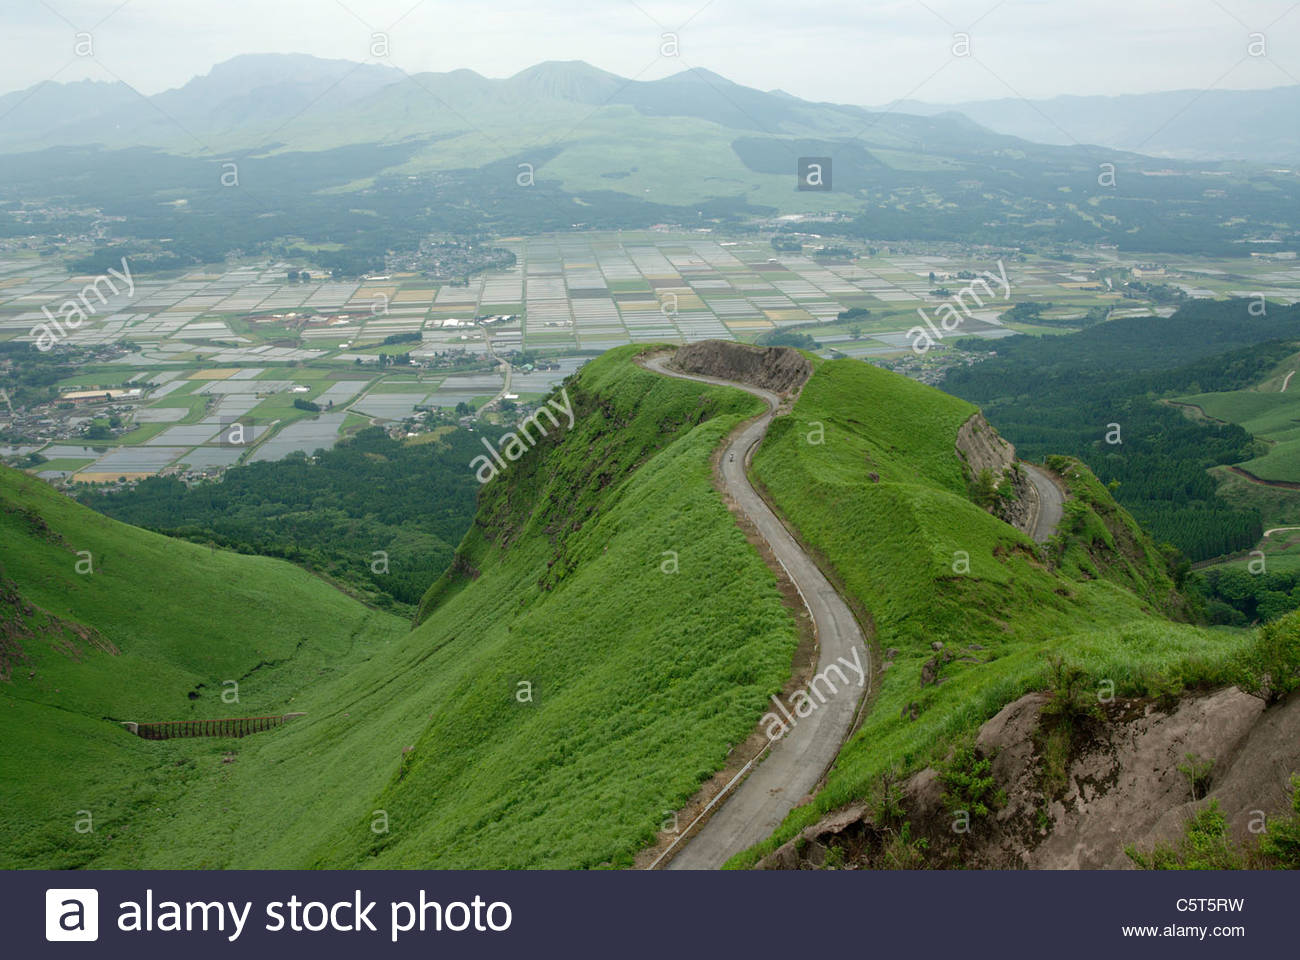 view over green rice fields in the caldera of Aso on Kyushu in Japan with a small winding mountain road - Stock Image